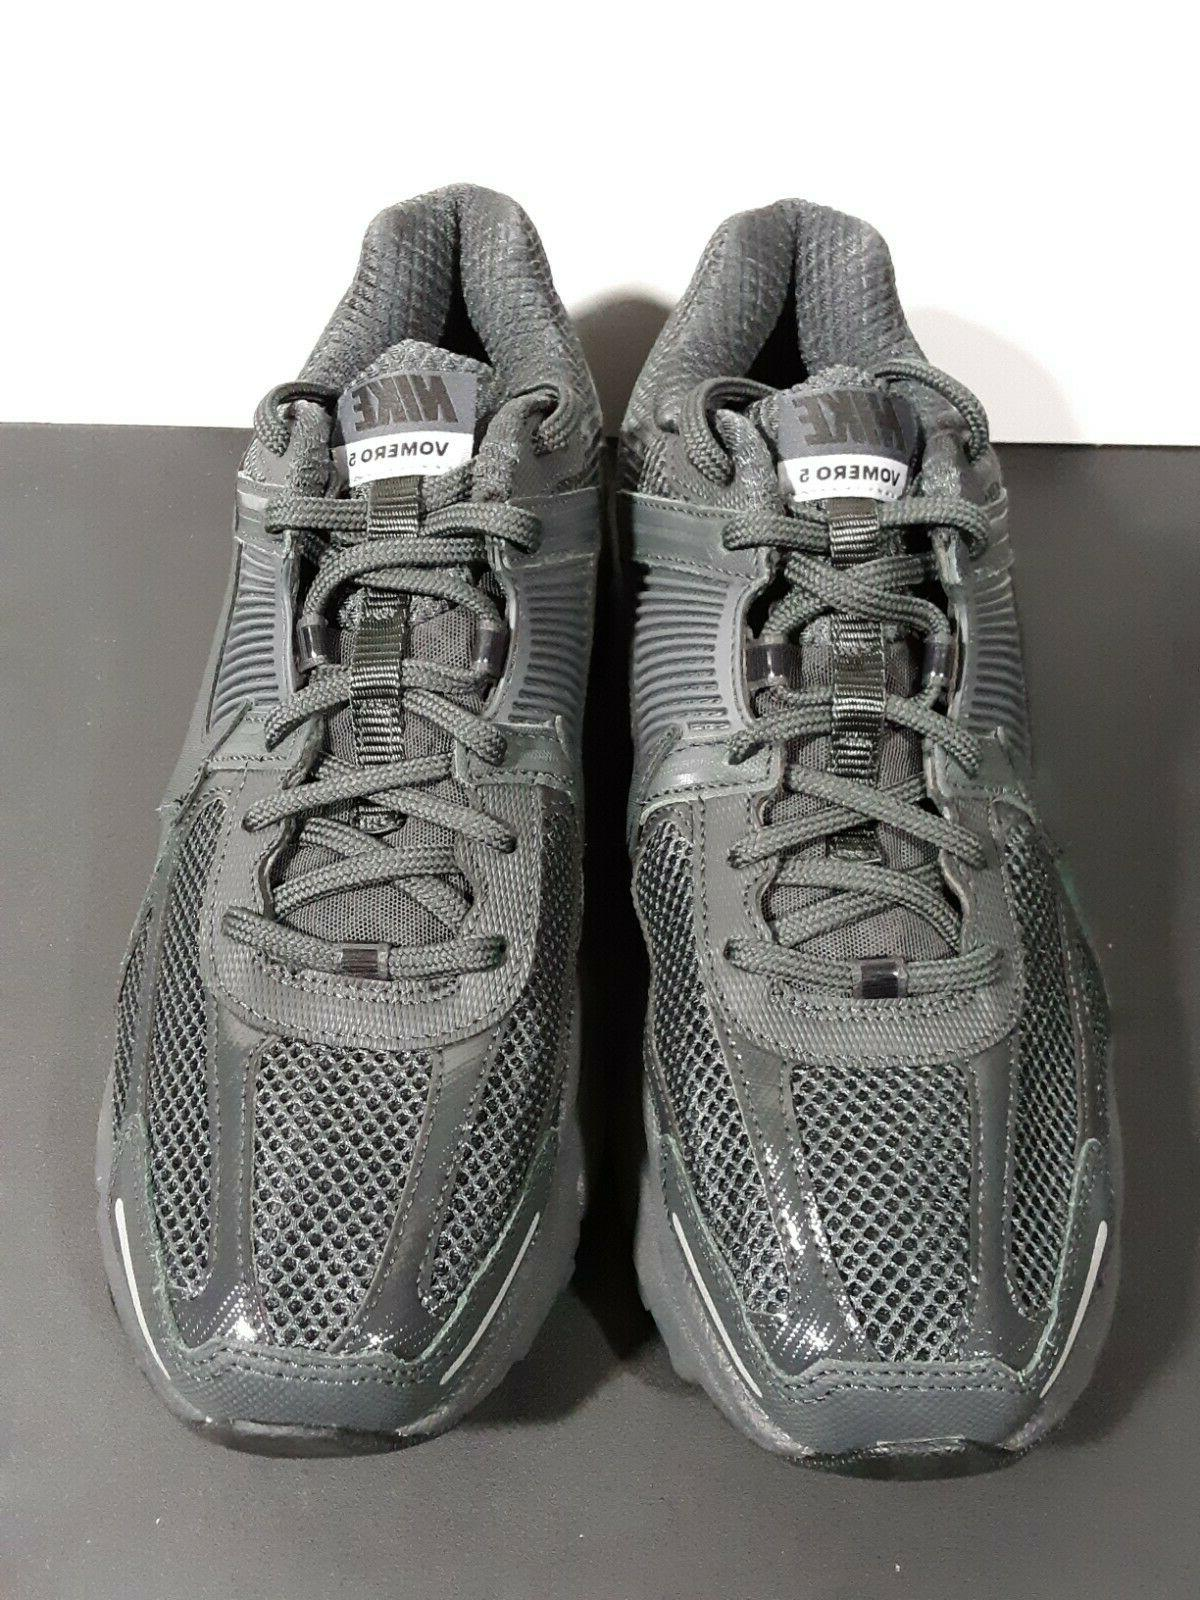 Nike Zoom Vomero 5 SP 10 - Anthracite BV1358-002